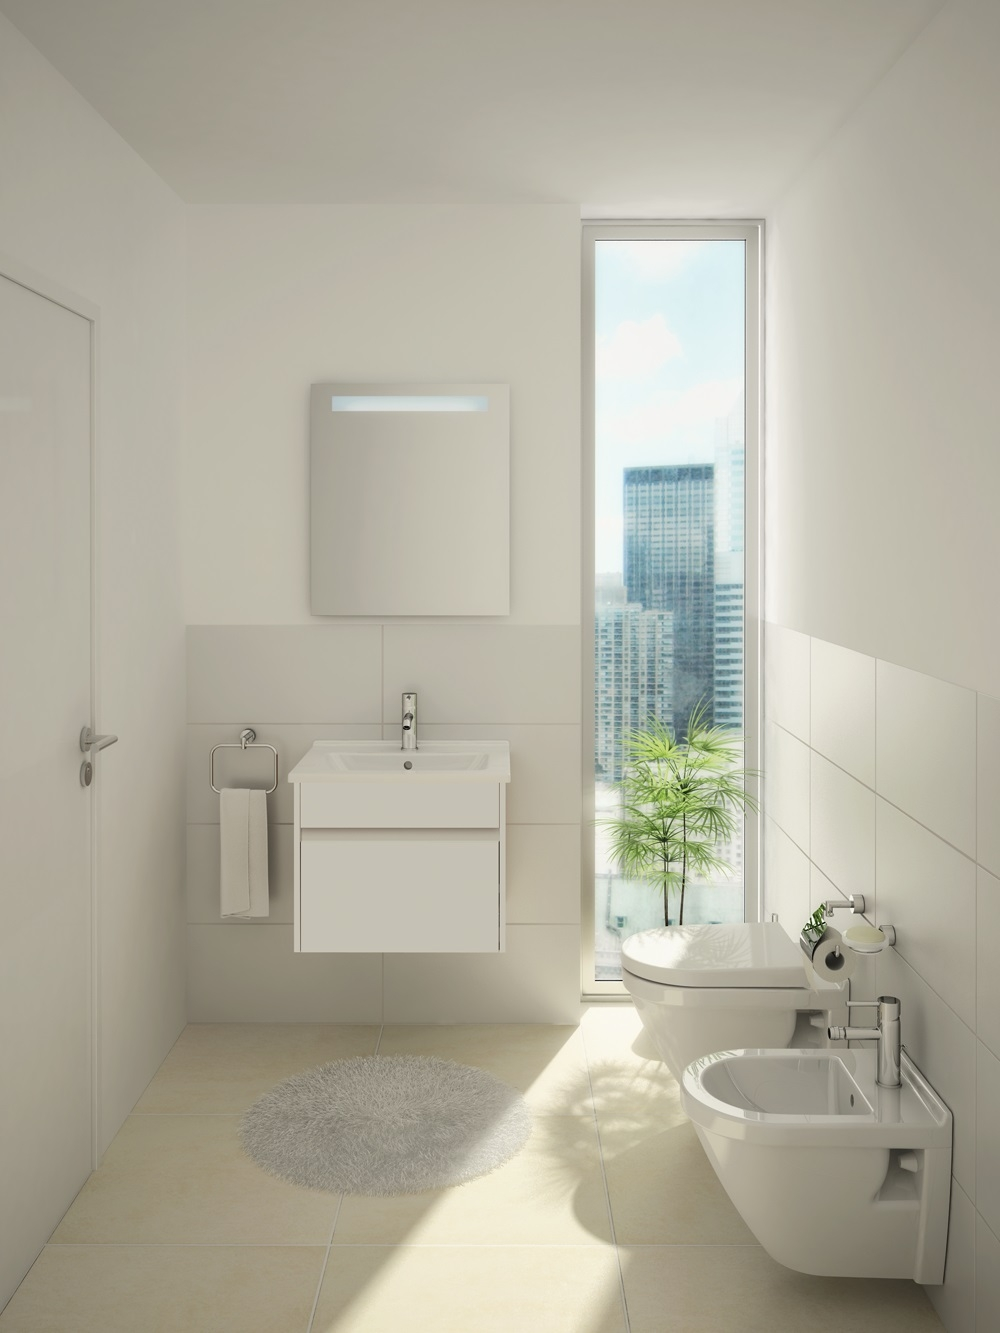 Discover en suite bathrooms at more bathrooms leeds for Images of en suite bathrooms